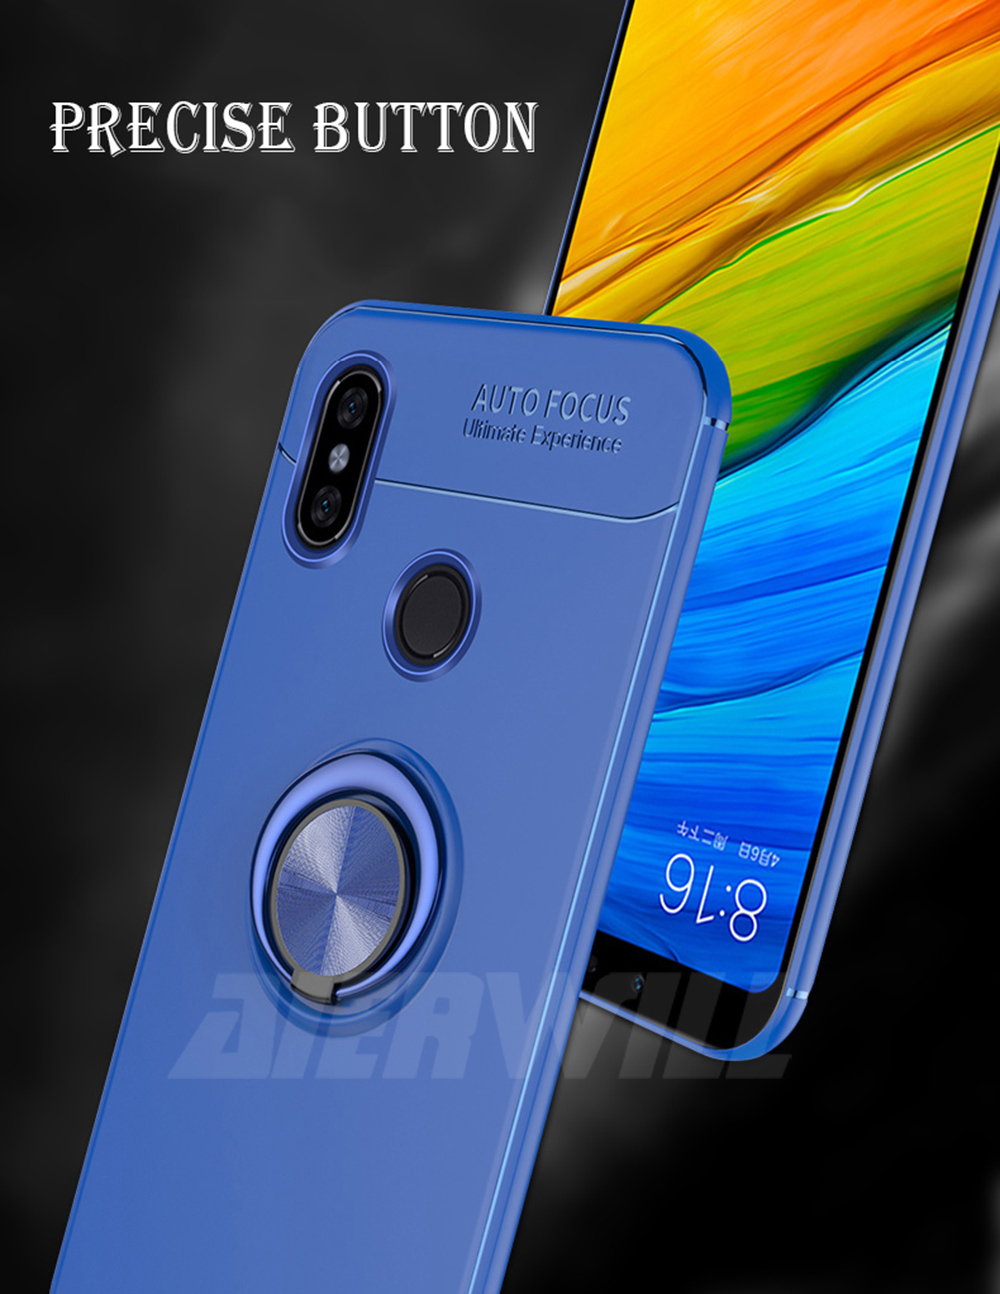 HTB1c12bXfvsK1RjSspdq6AZepXaE Armor case For Xiaomi Mi Max 3 Case Protective Bumper Finger Ring Holder Soft Silicone Matte Back Cover For Xiaomi max 3 Cases